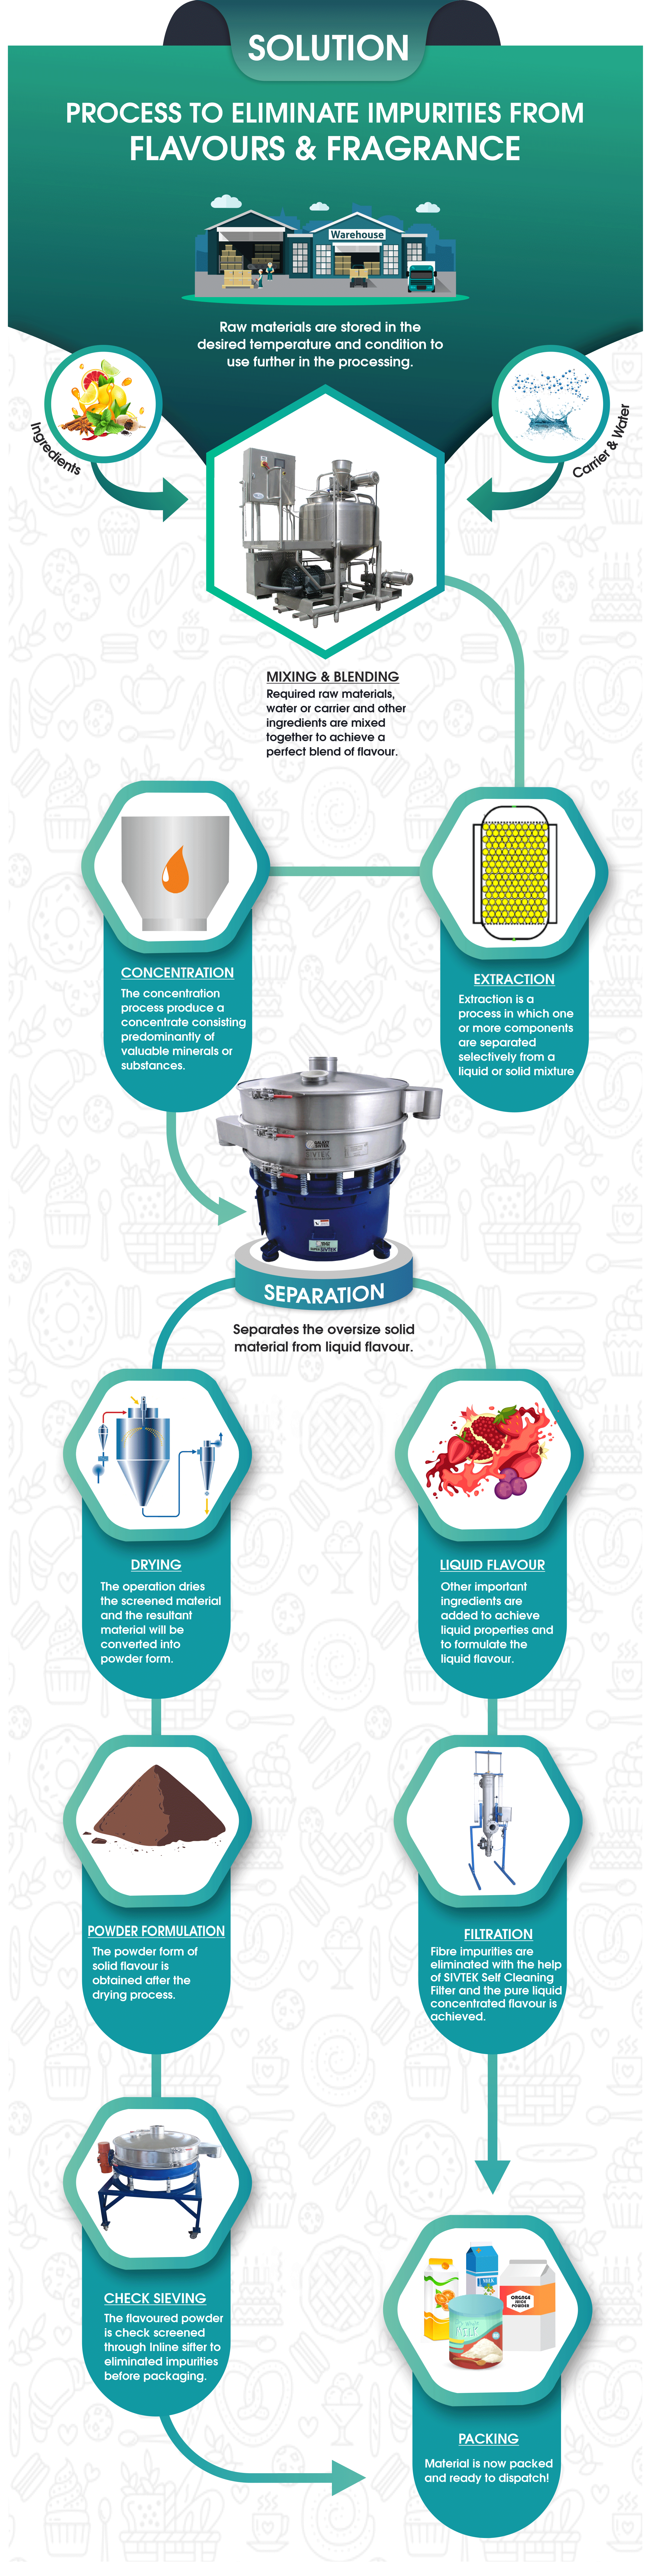 Flavour Sieving Process